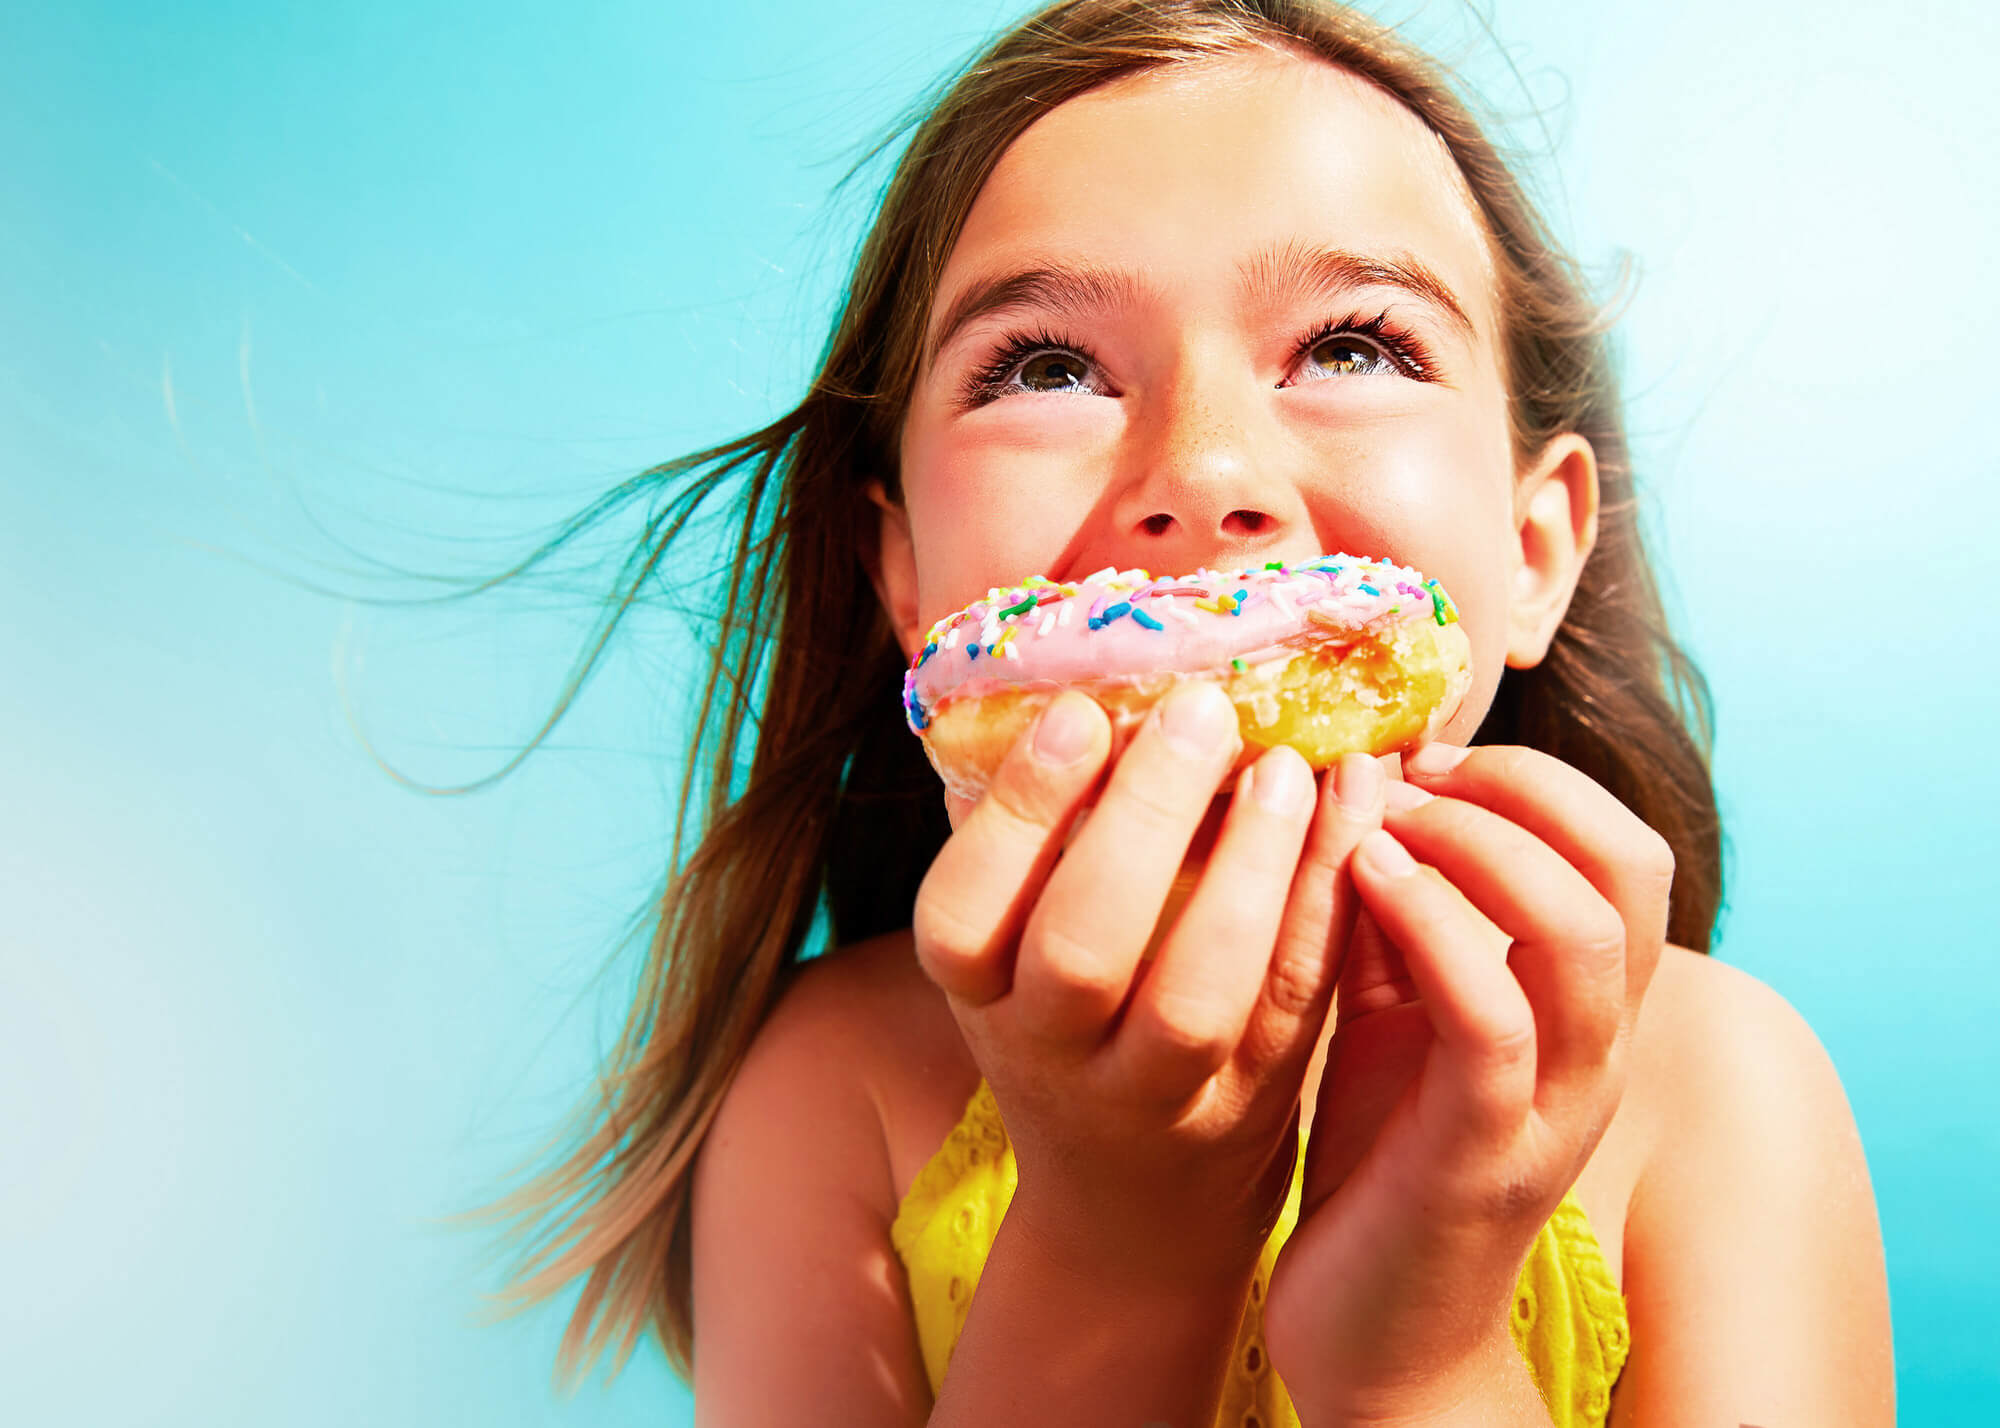 Portrait of young girl with donut